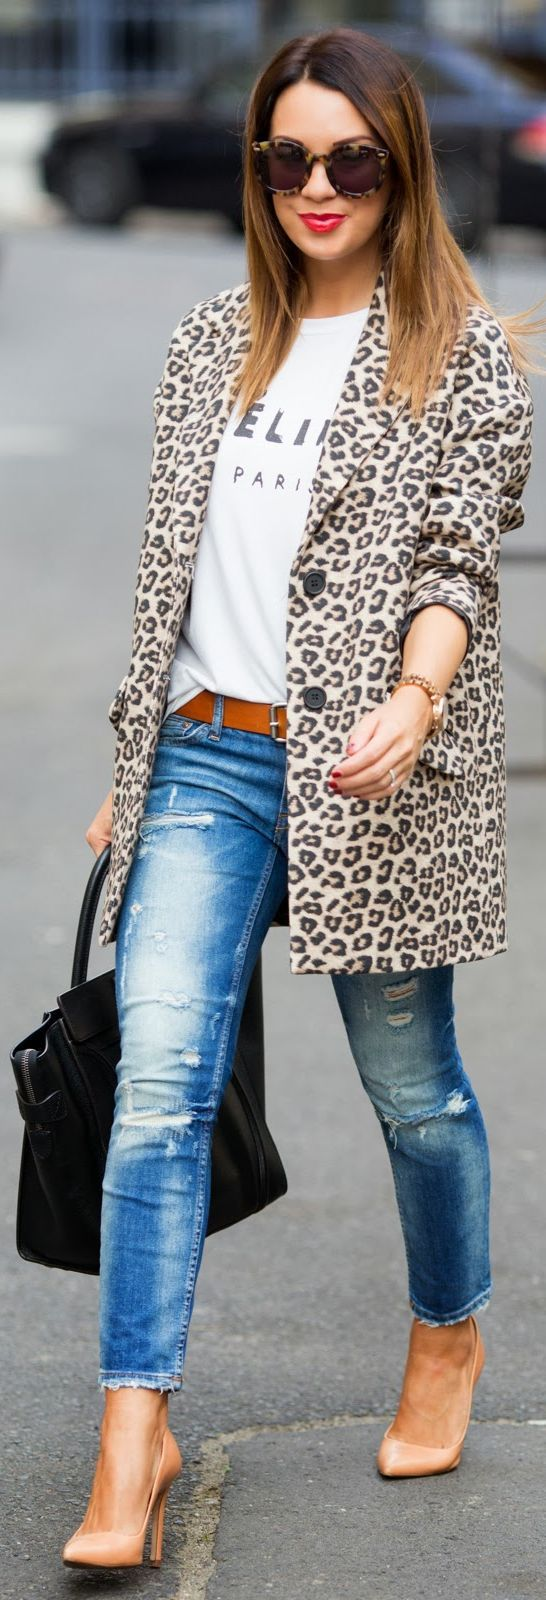 Simply Chic - Casual + Leopard.